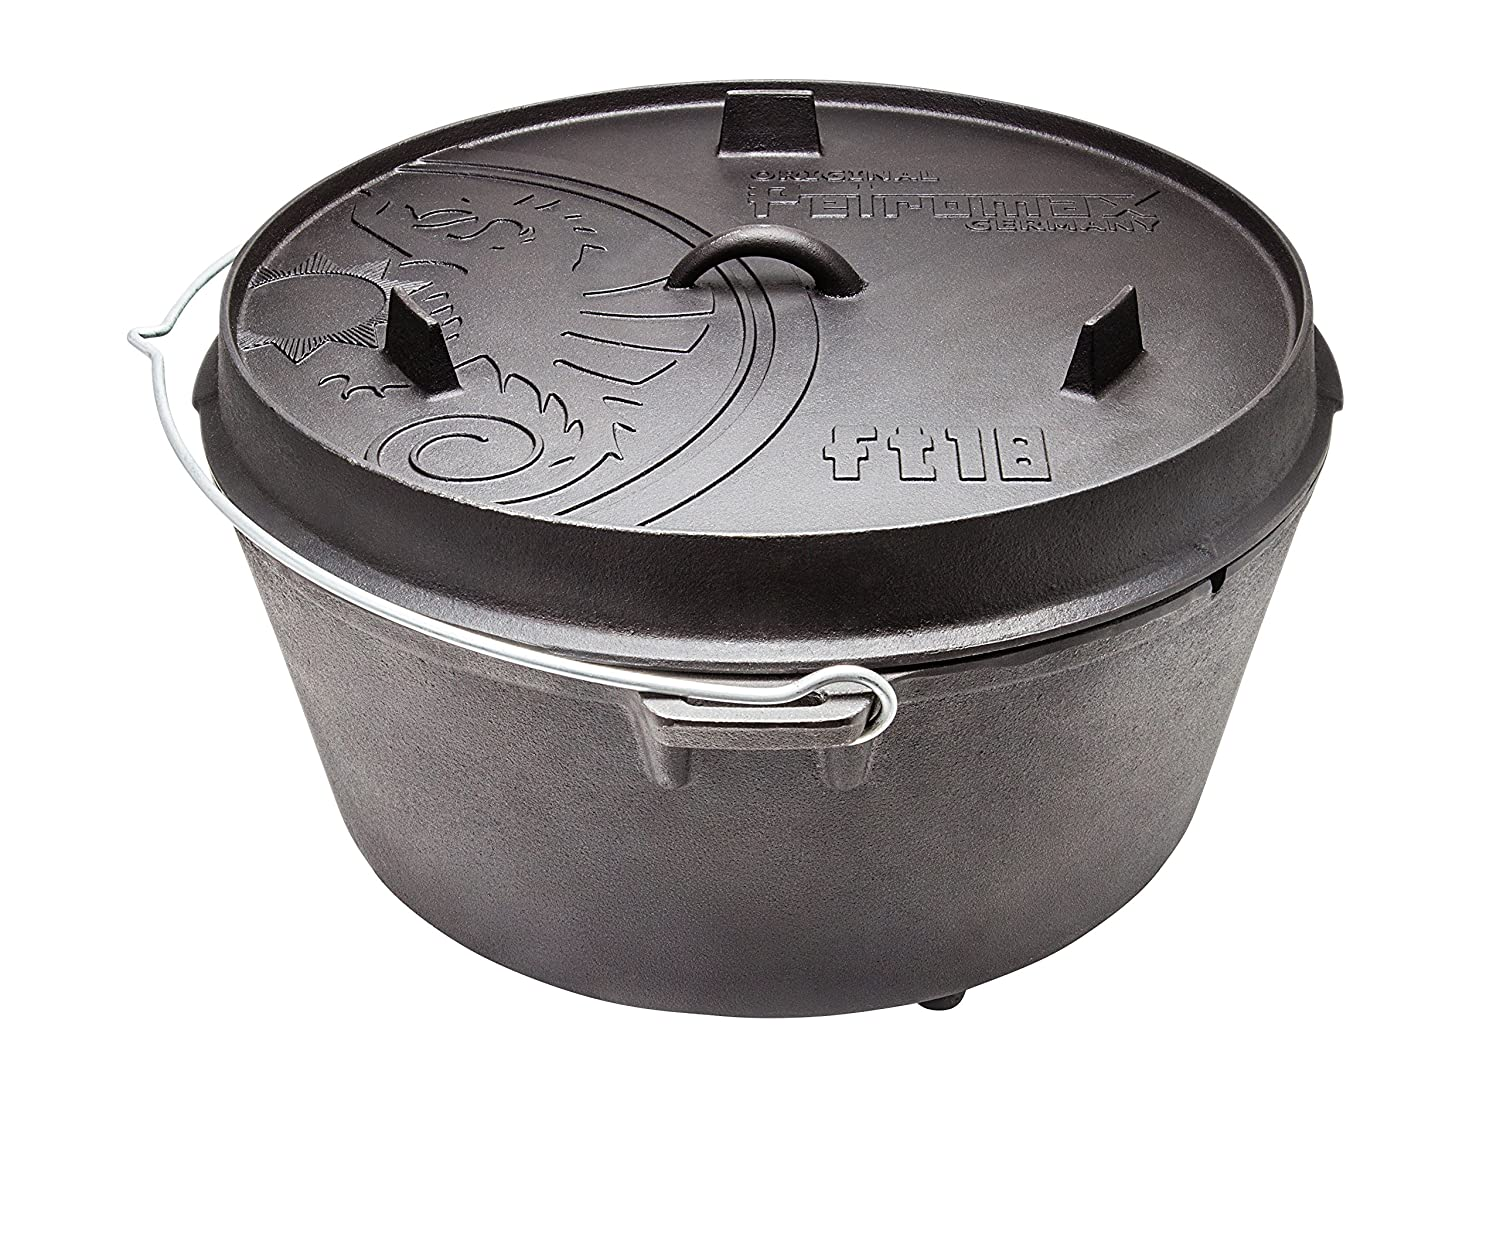 Petromax Cast Iron Dutch Oven with Flat Base - 17 Qt